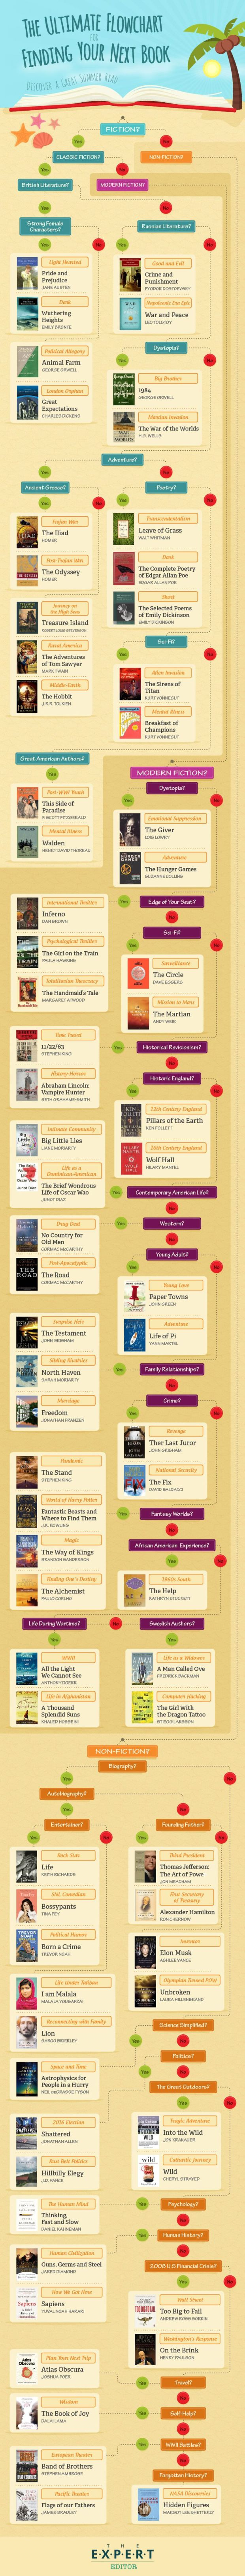 Infographic: The Ultimate Flowchart for Finding Your Next Read Infographic